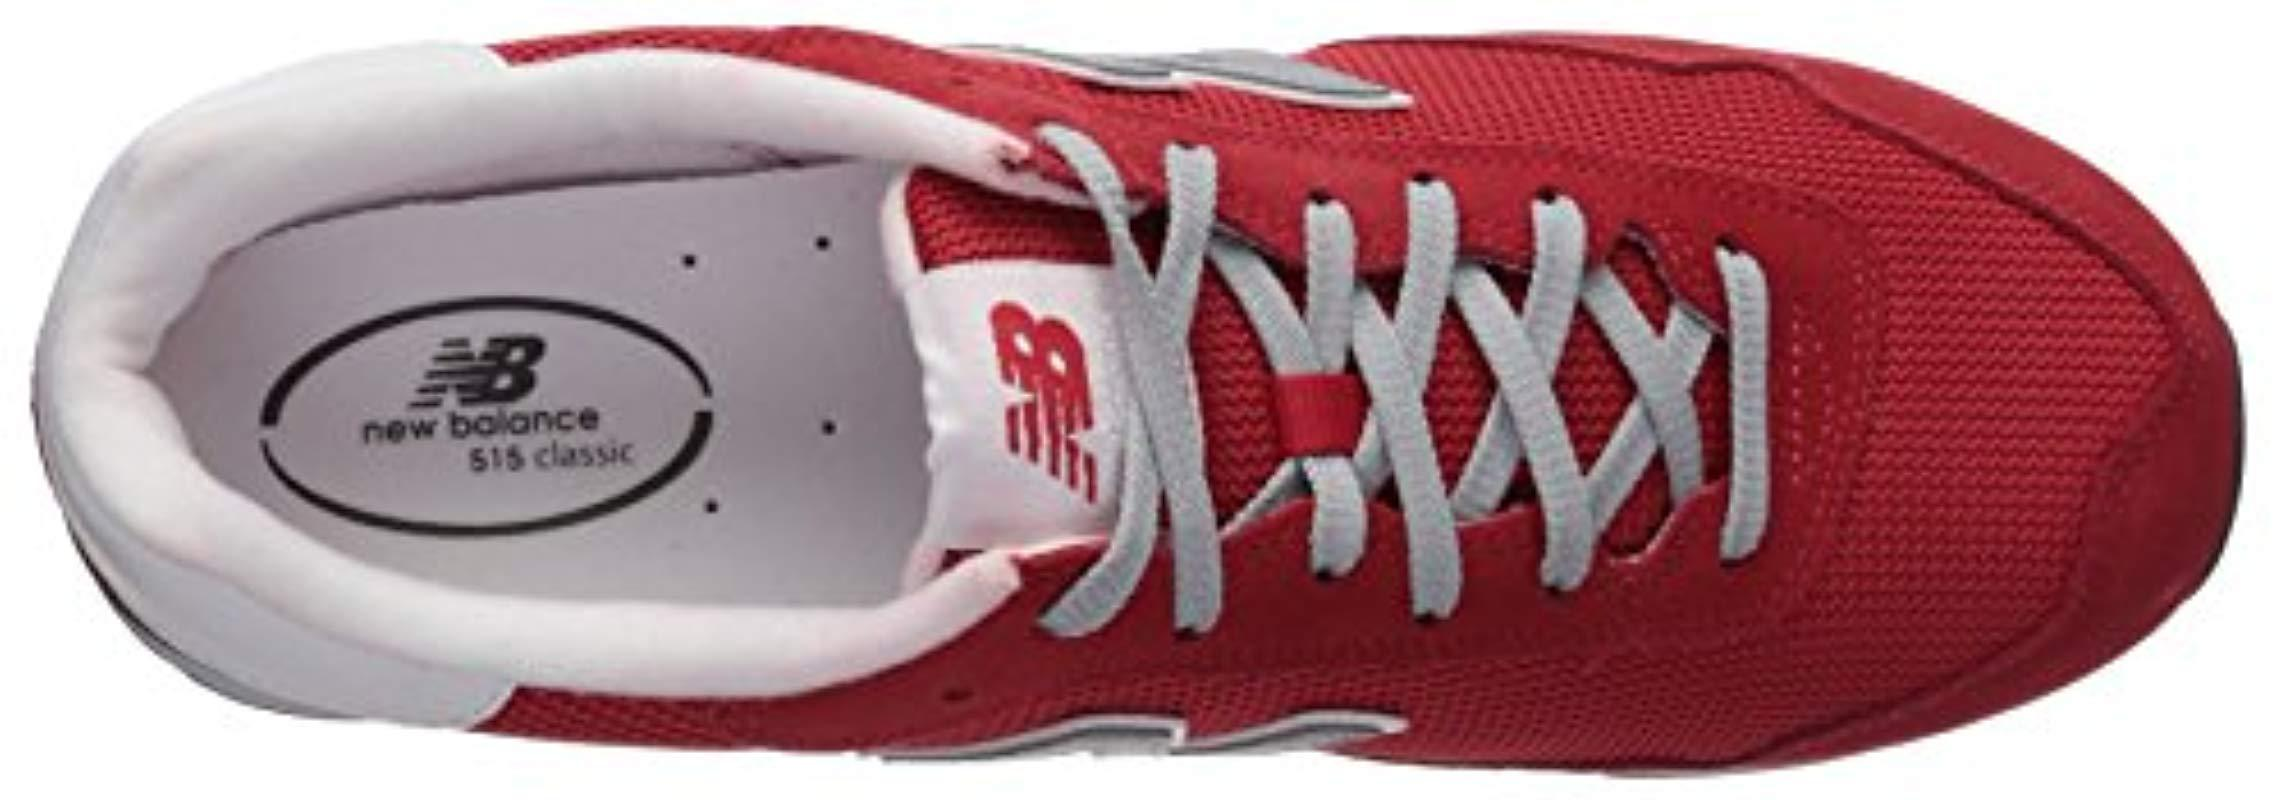 e091b6c9ee6a5 Lyst - New Balance 515v1 Sneaker in Red for Men